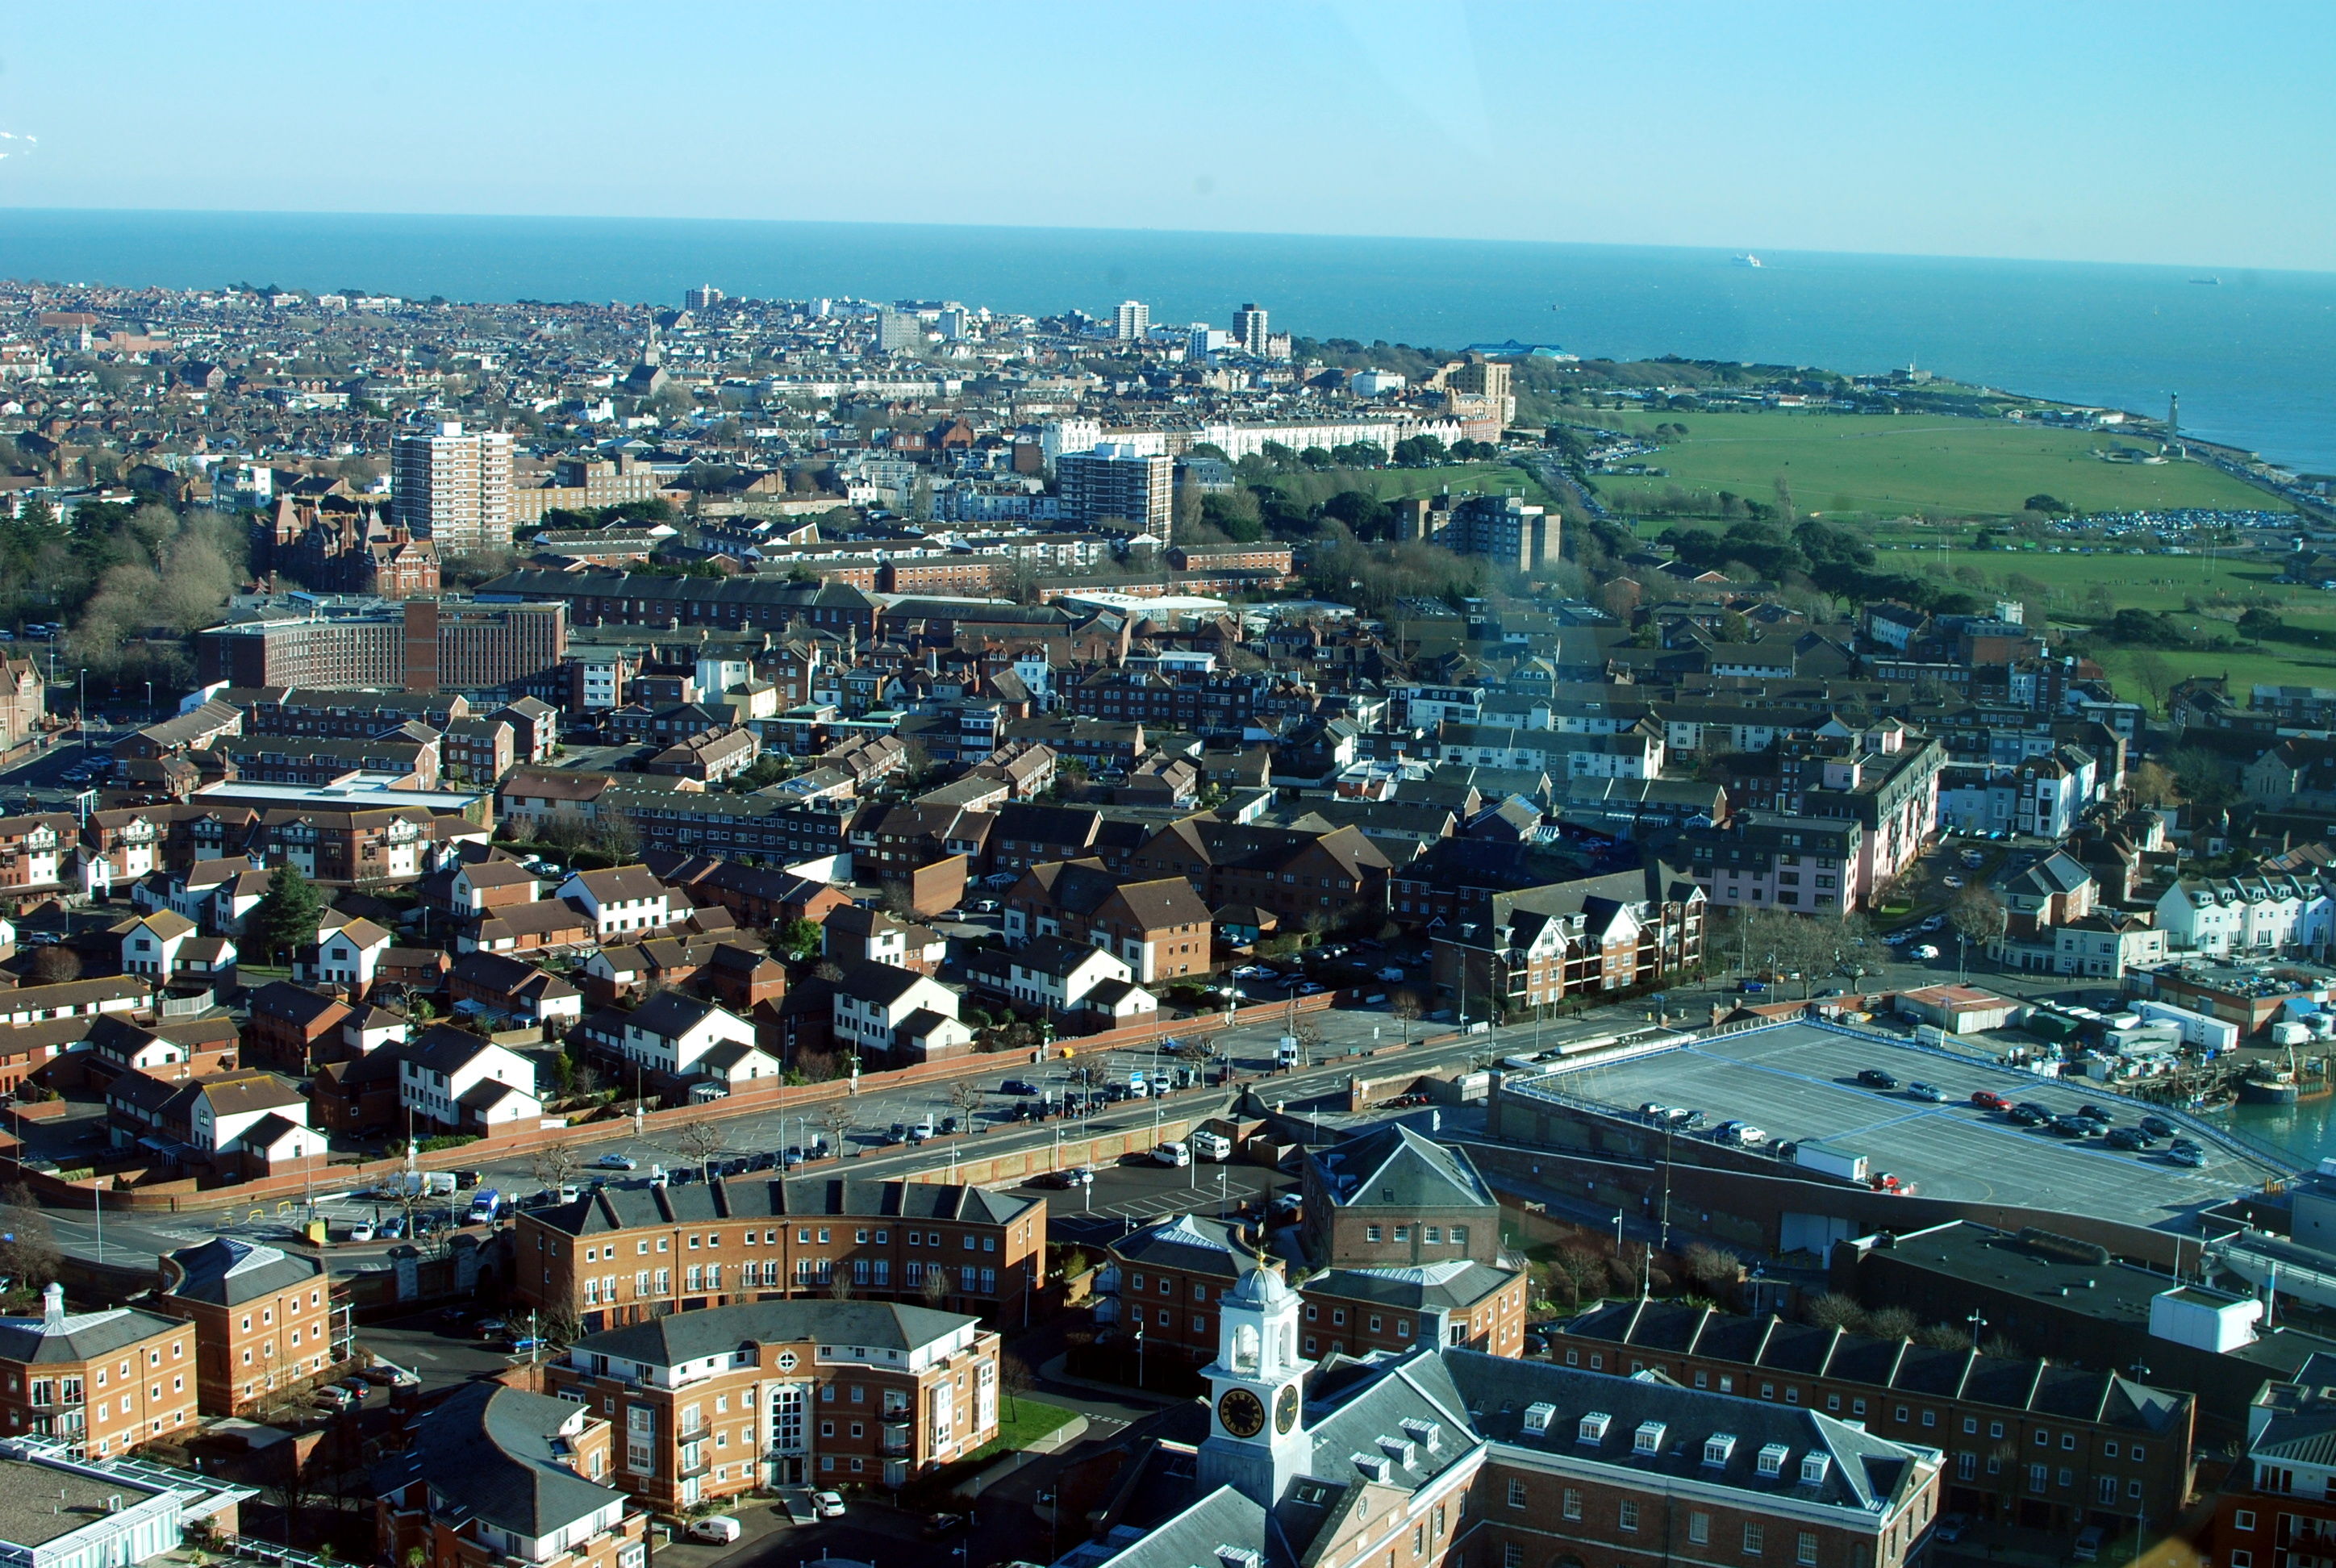 South view from Spinnaker Tower